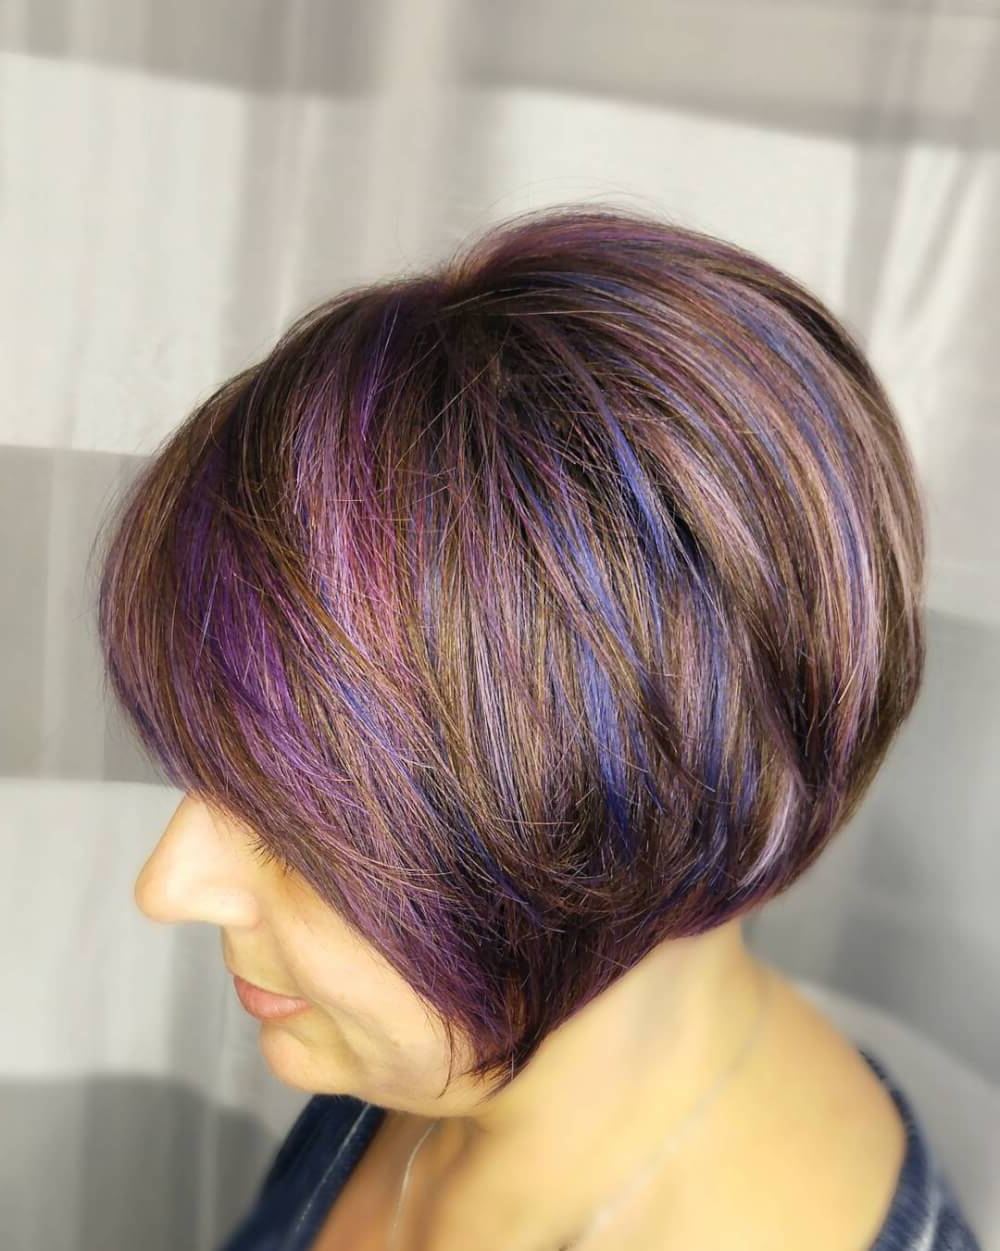 39 Classiest Short Hairstyles For Women Over 50 Of 2018 For Hairstyles For The Over 50S Short (View 18 of 25)